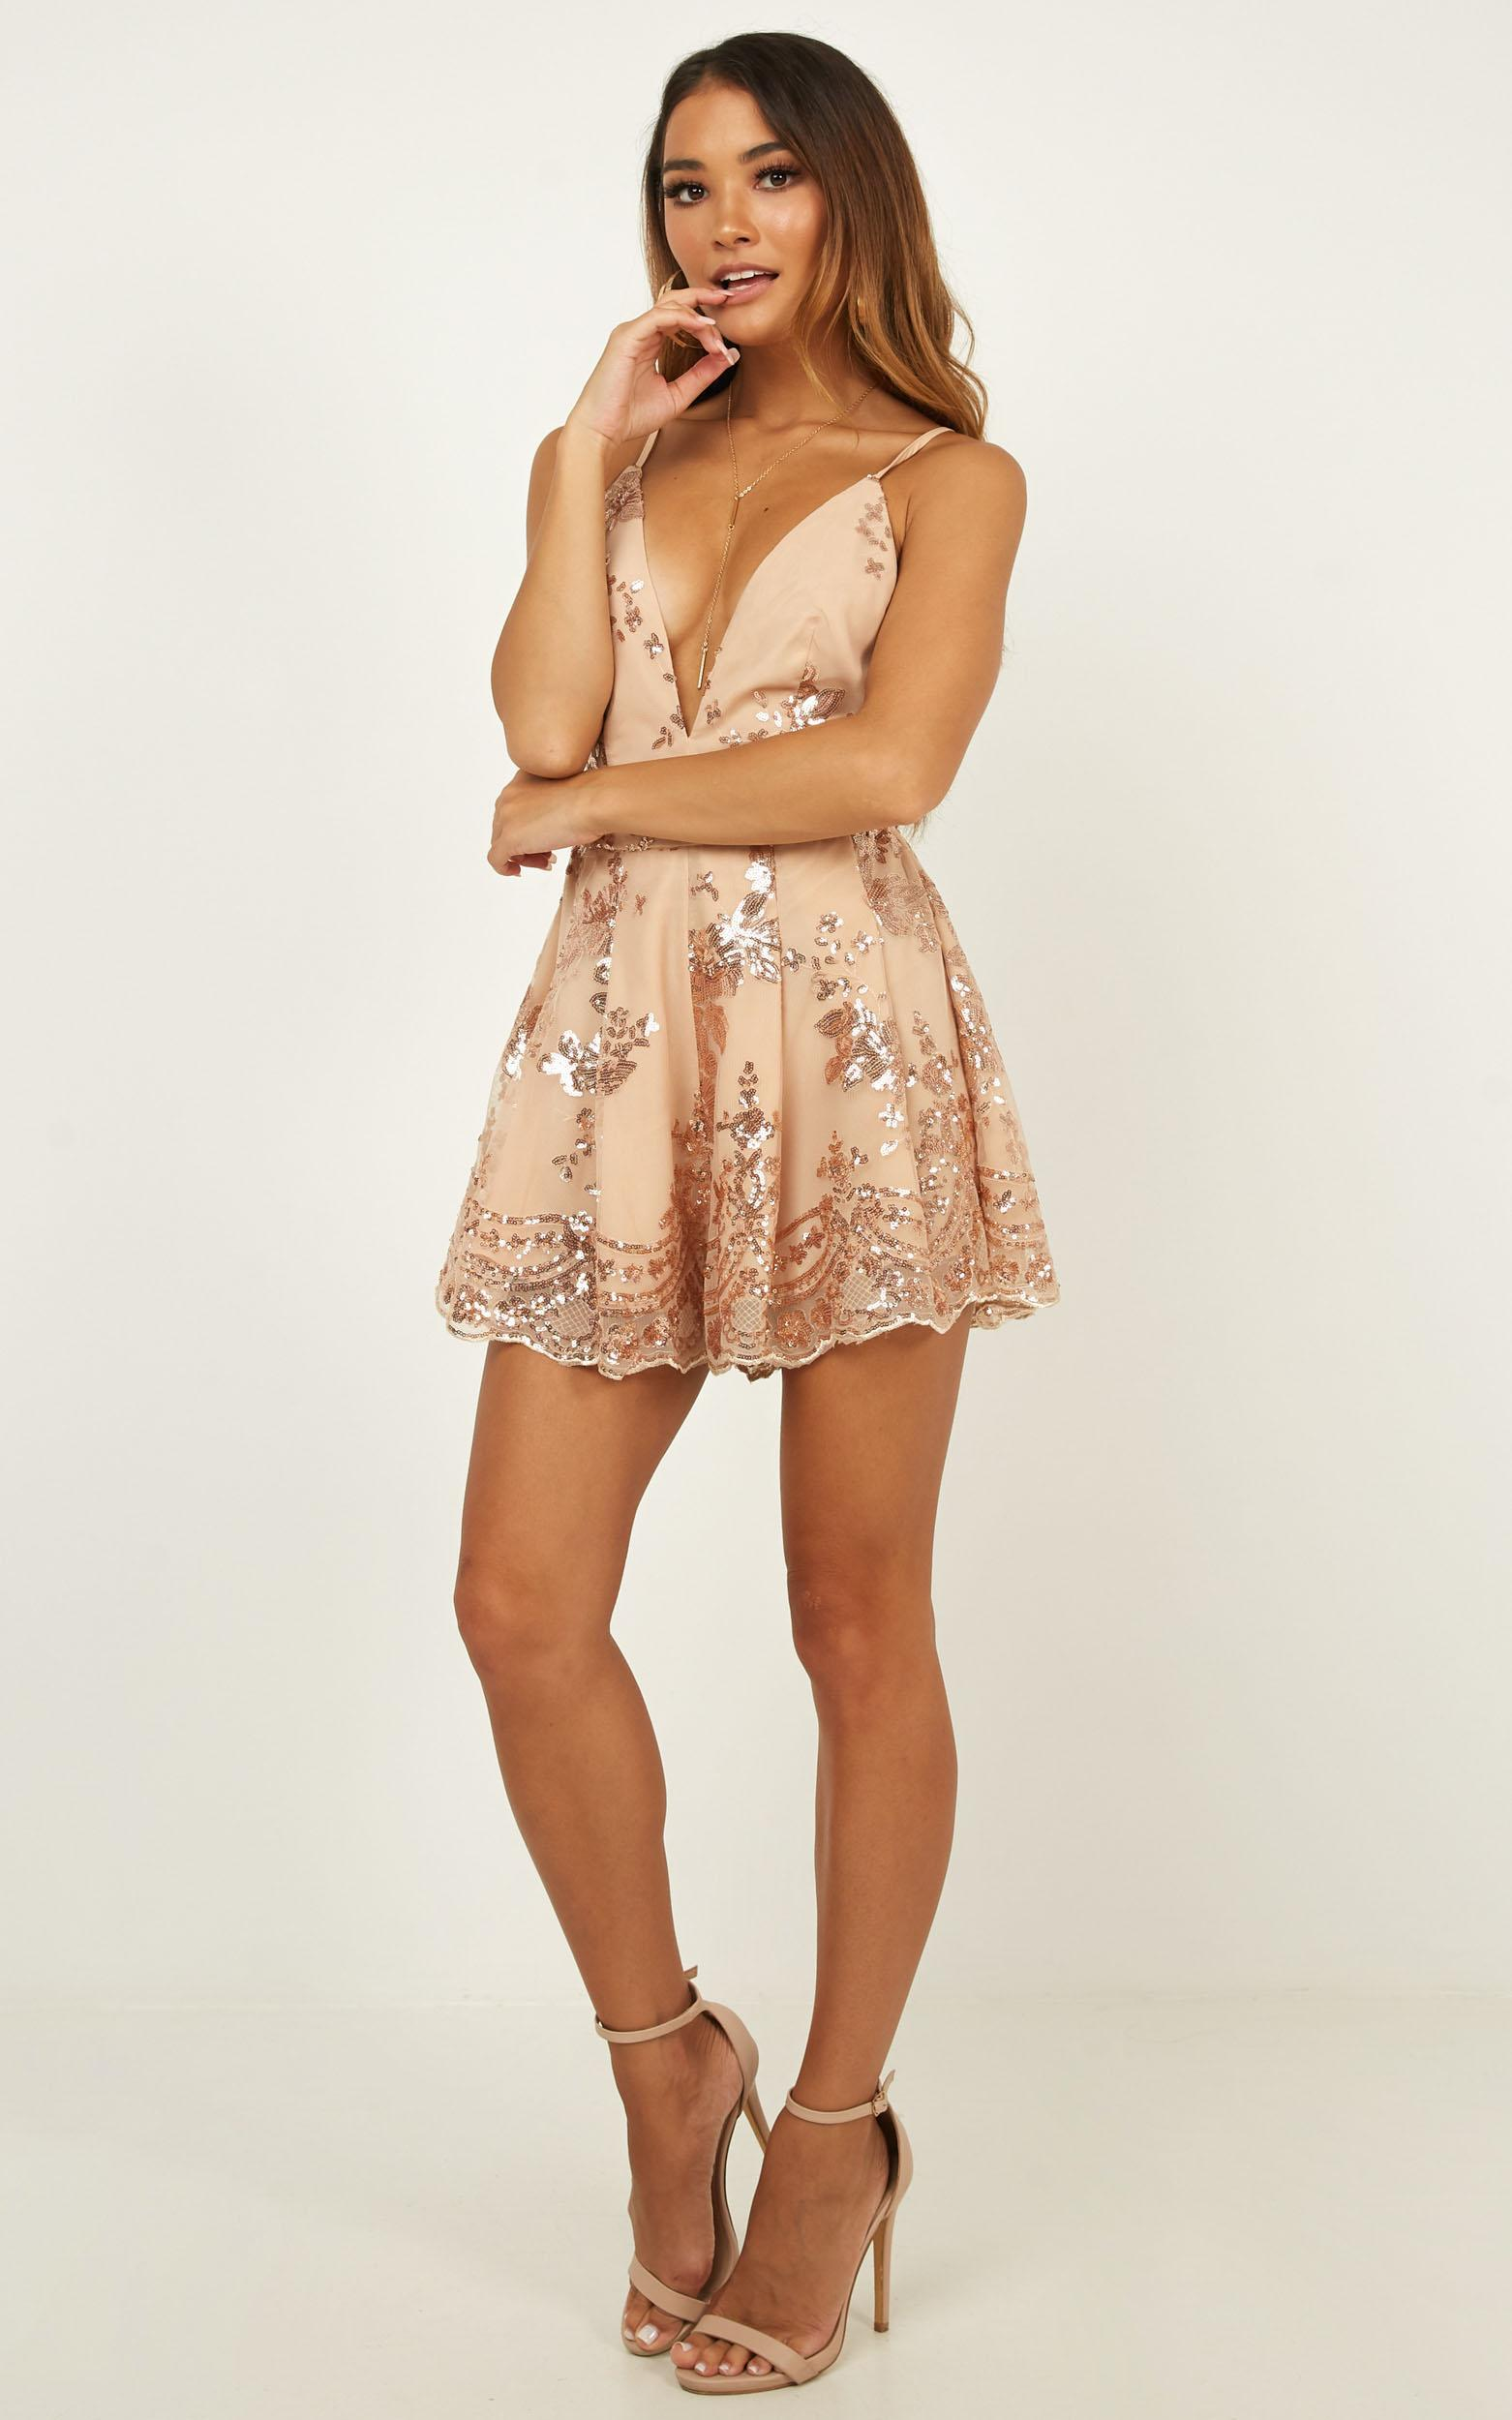 Boys Lining Up Playsuit in rose gold sequin - 20 (XXXXL), Rose Gold, hi-res image number null